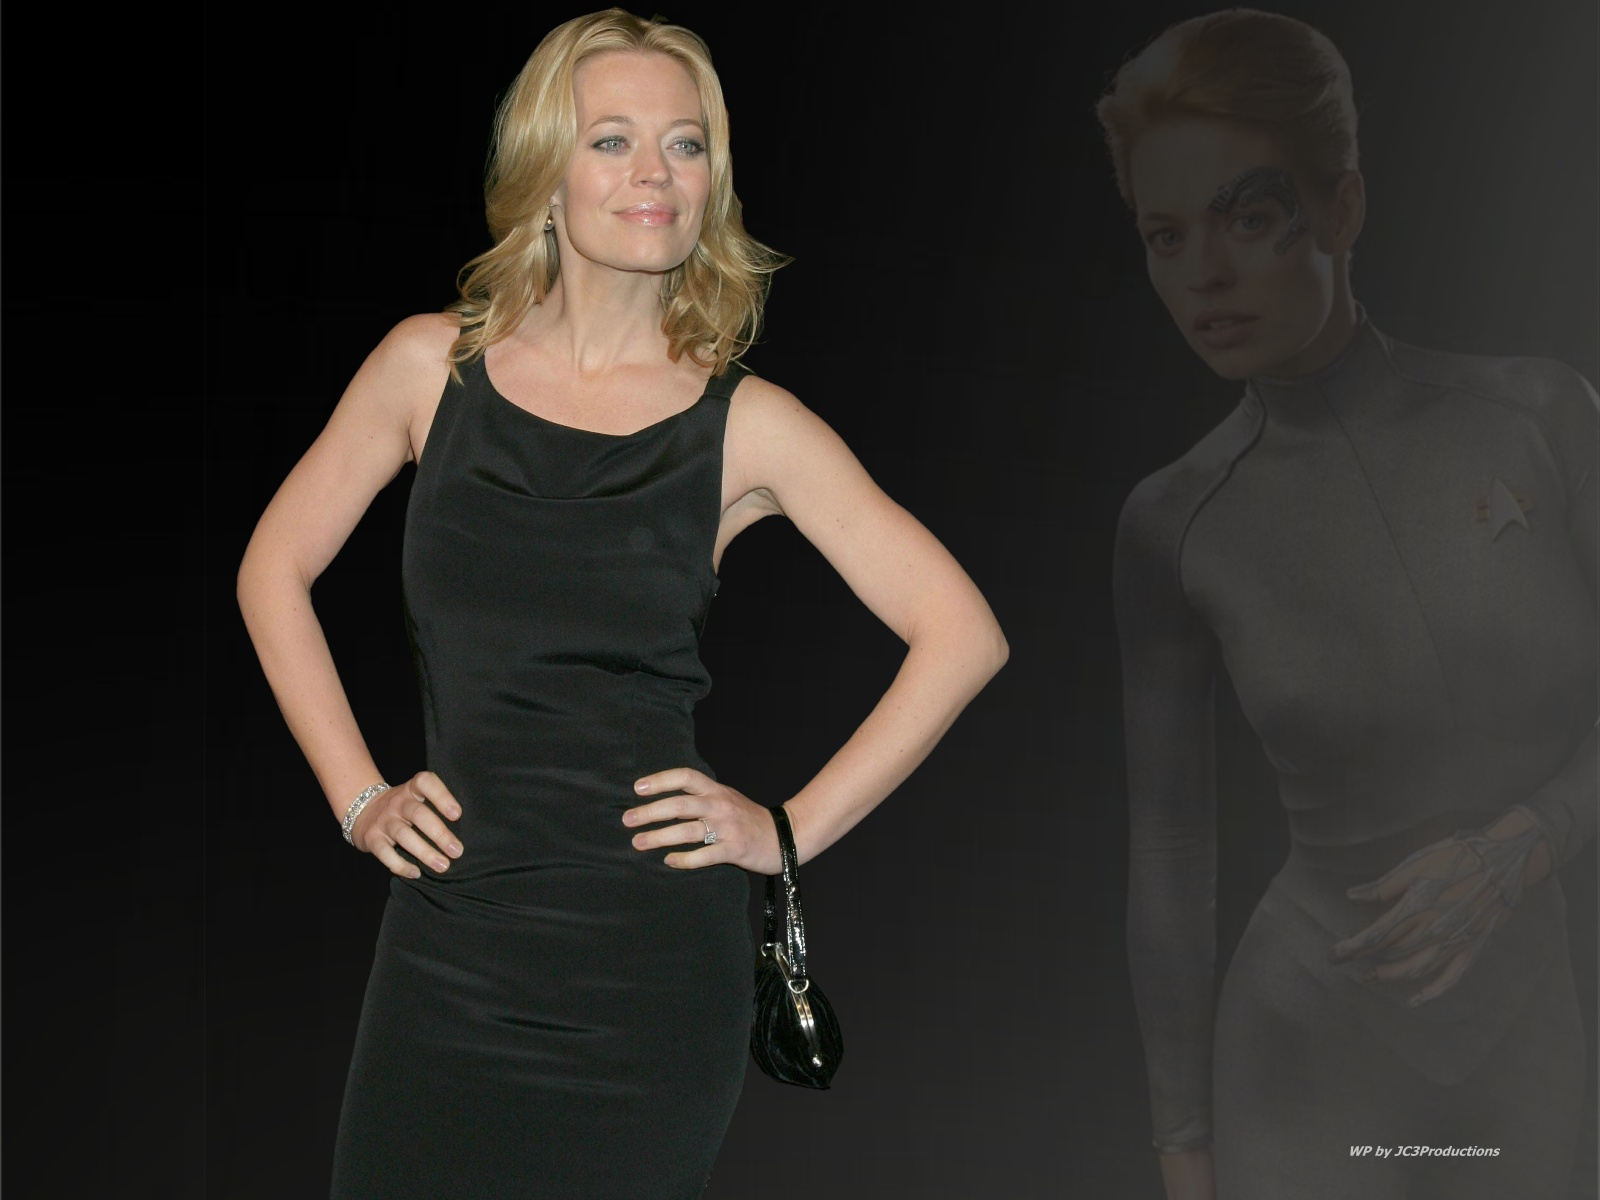 Jeri ryan sexy pictures mistaken